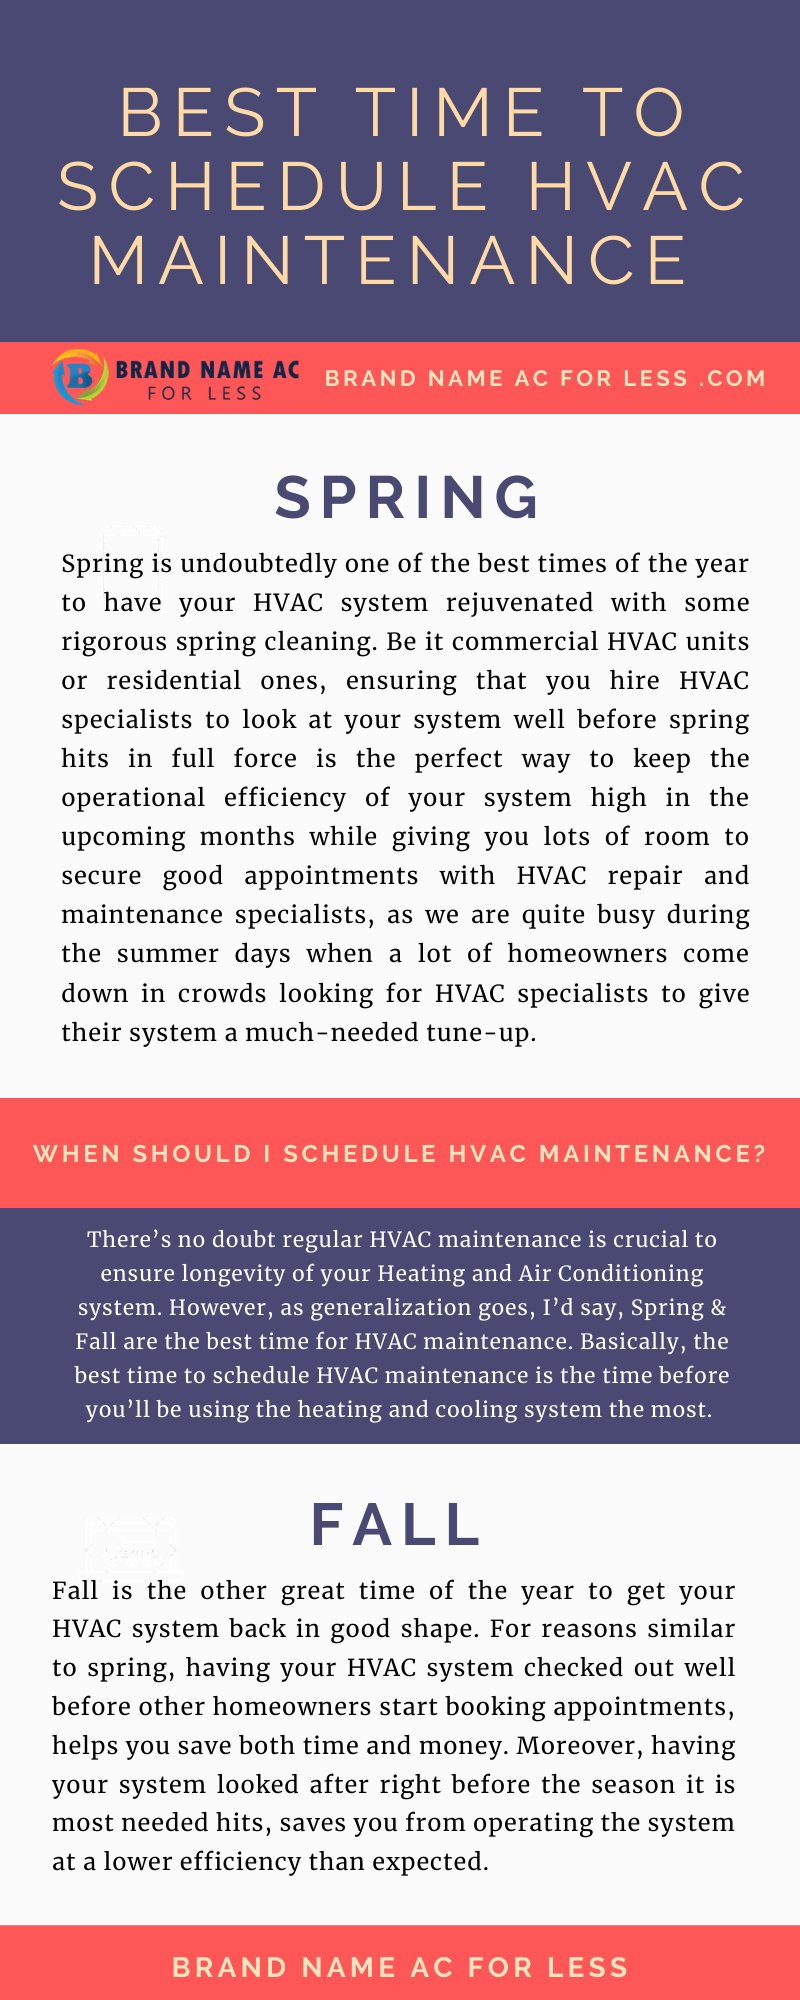 Best Time to Schedule HVAC Maintenance